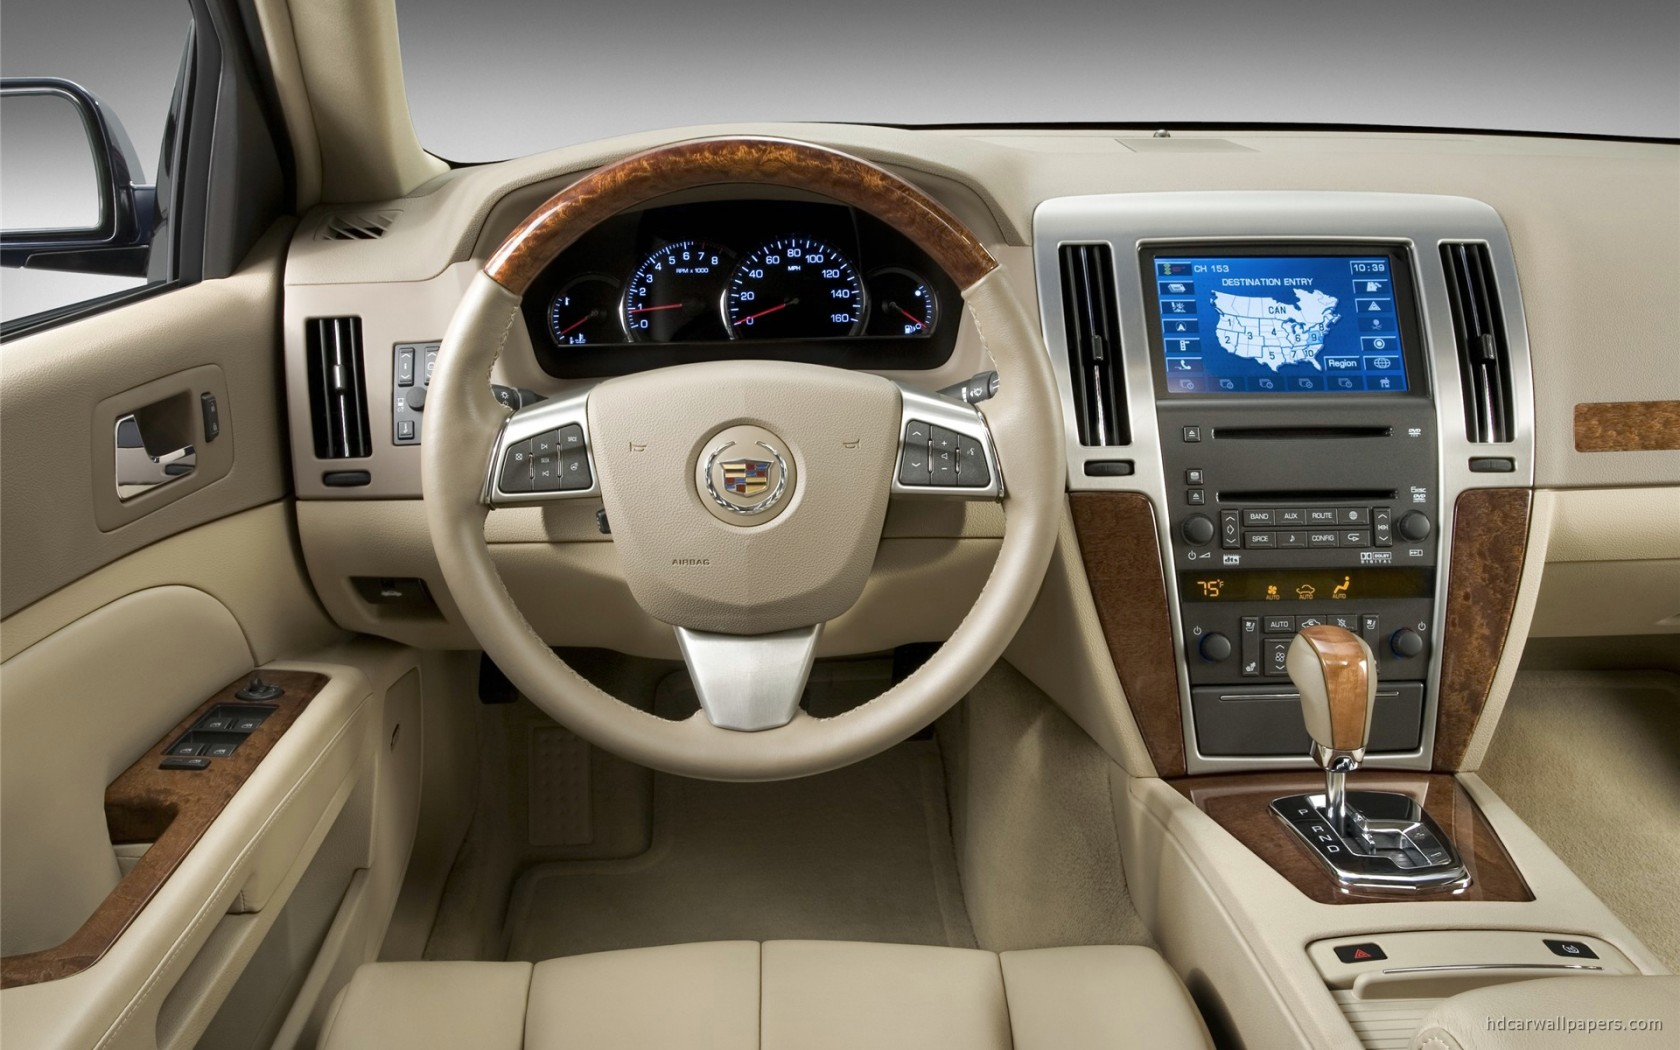 Cadillac Sts Car Interior Wallpaper Hd Car Wallpapers